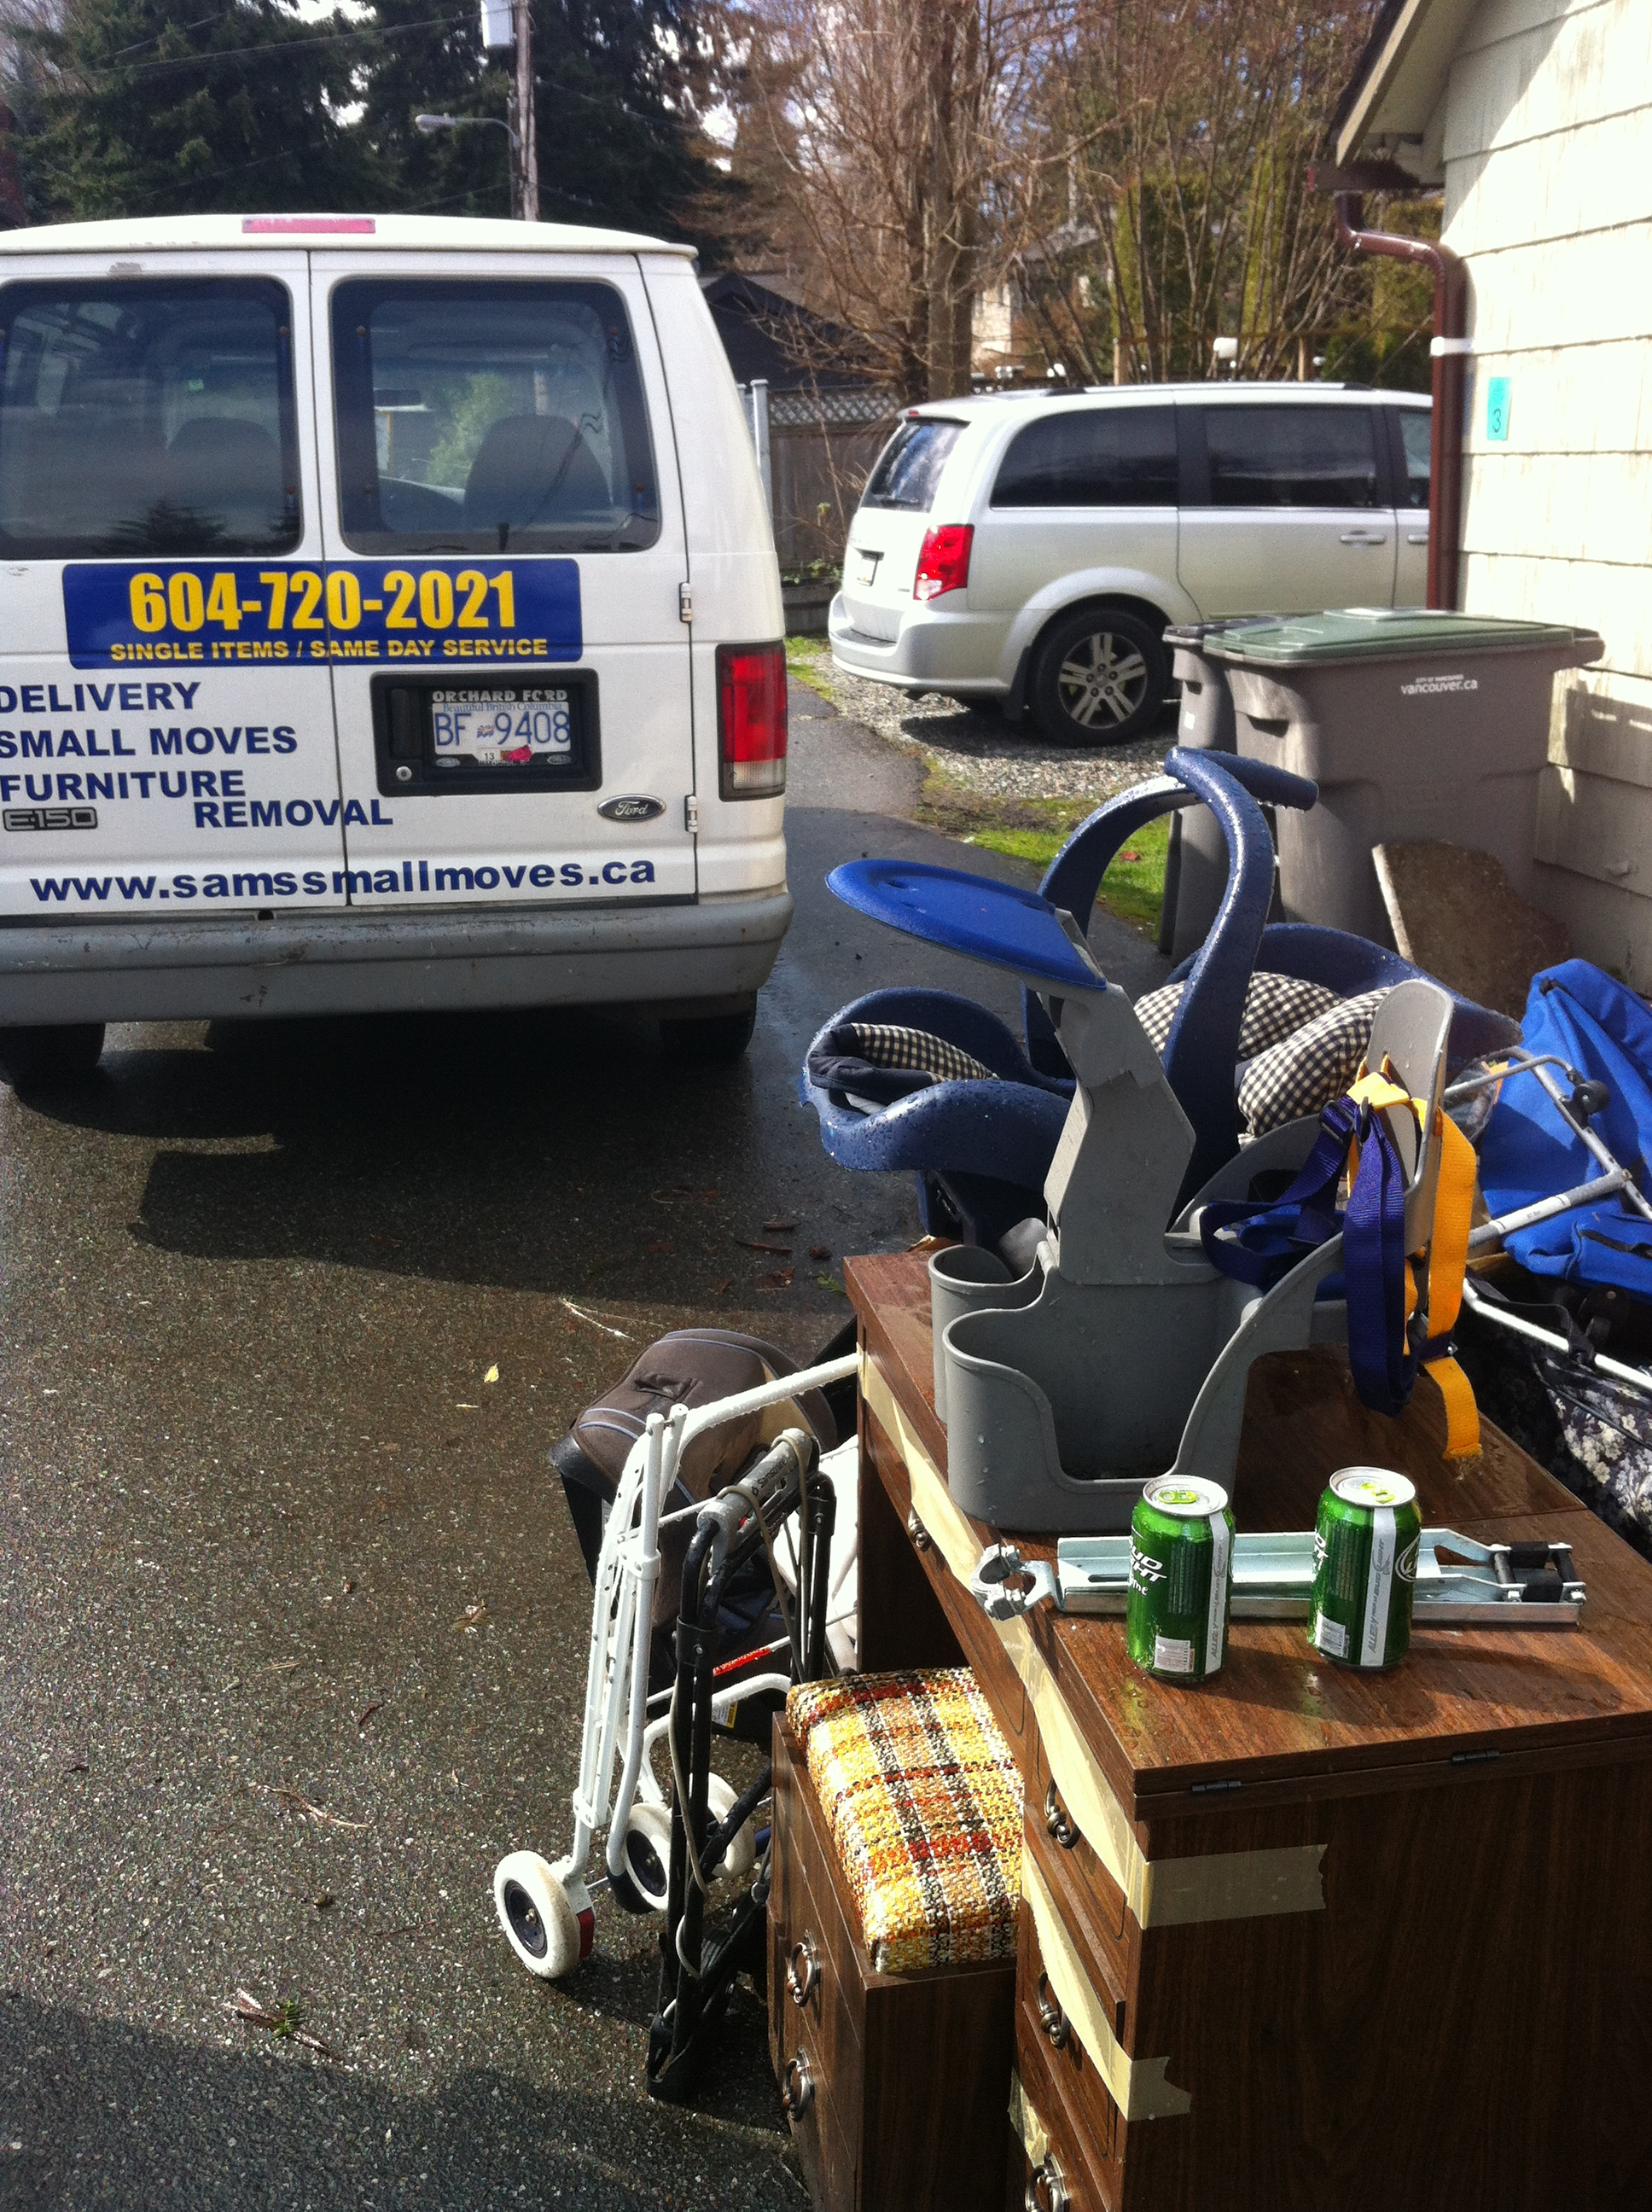 Old Furniture Removal Service Furniture Disposal